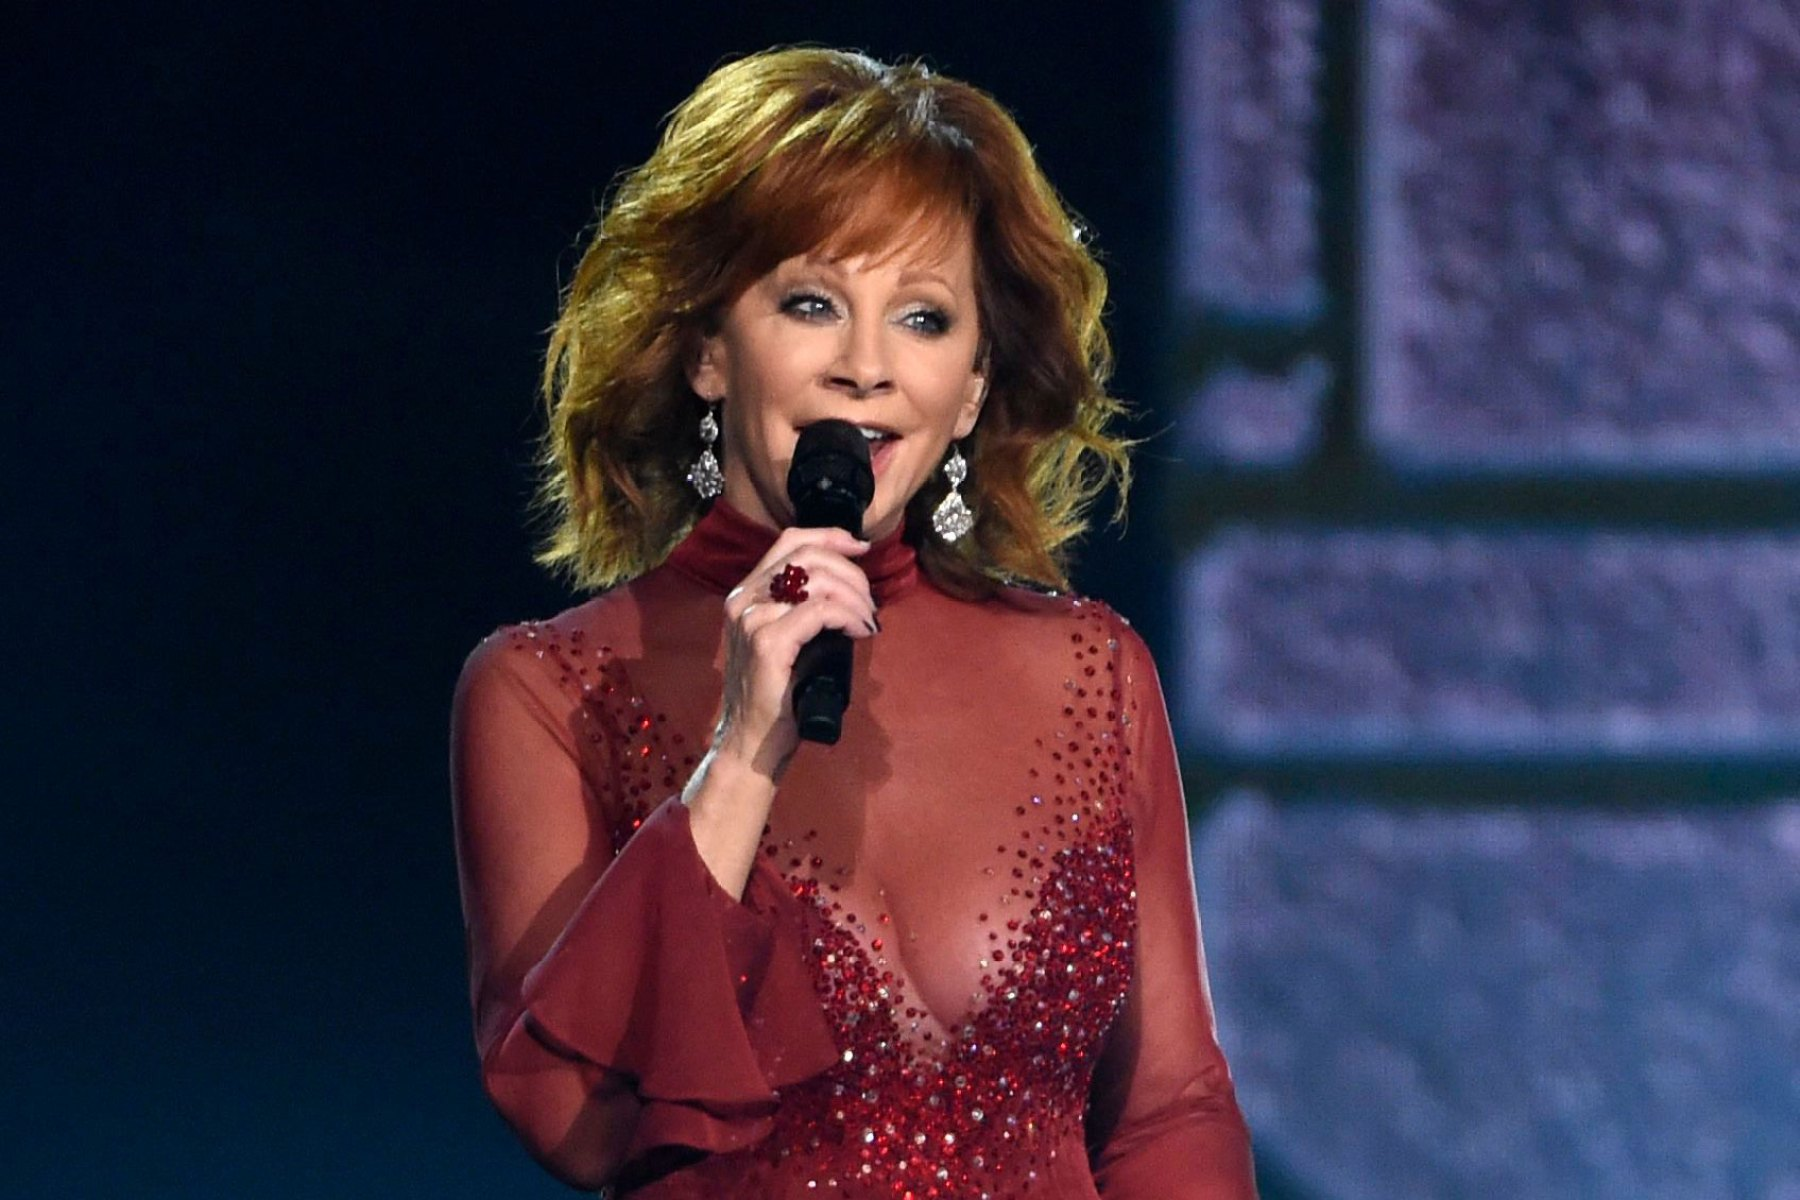 Reba McEntire Details New Album 'Stronger Than the Truth' - Rolling Stone